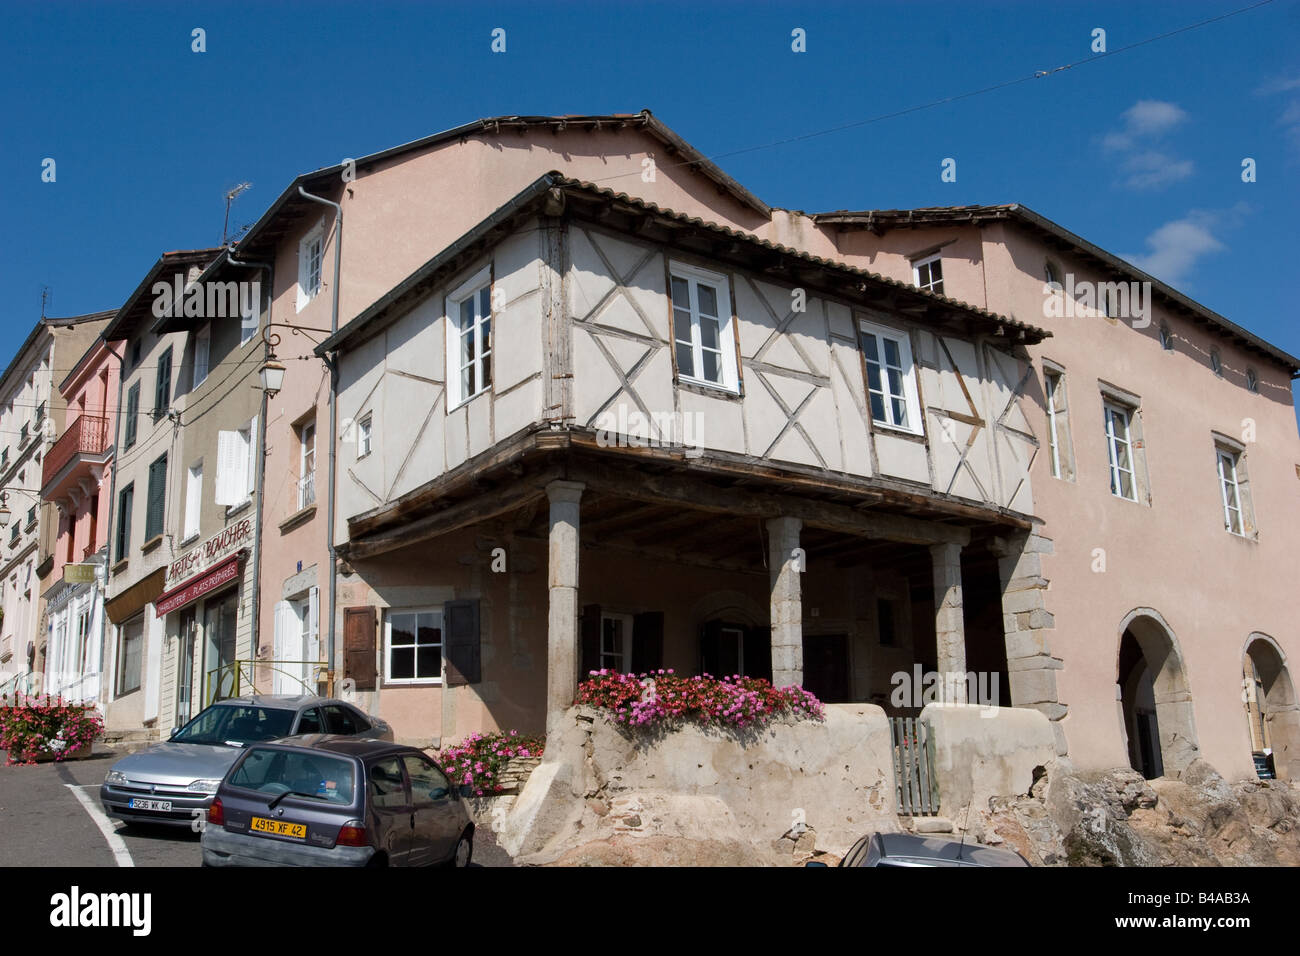 mobile home holiday france with Stock Photo Sixteenth Century House On Columns Place Des Roches Saint Galmier 19897230 on C ing also Aston Martin Mobiado Luxury Cellphone additionally C ing Marina Di Venezia in addition Rivulet Cowl Knitting Pattern By Louise Zass Bangham likewise The Chateau Of Cormatin.